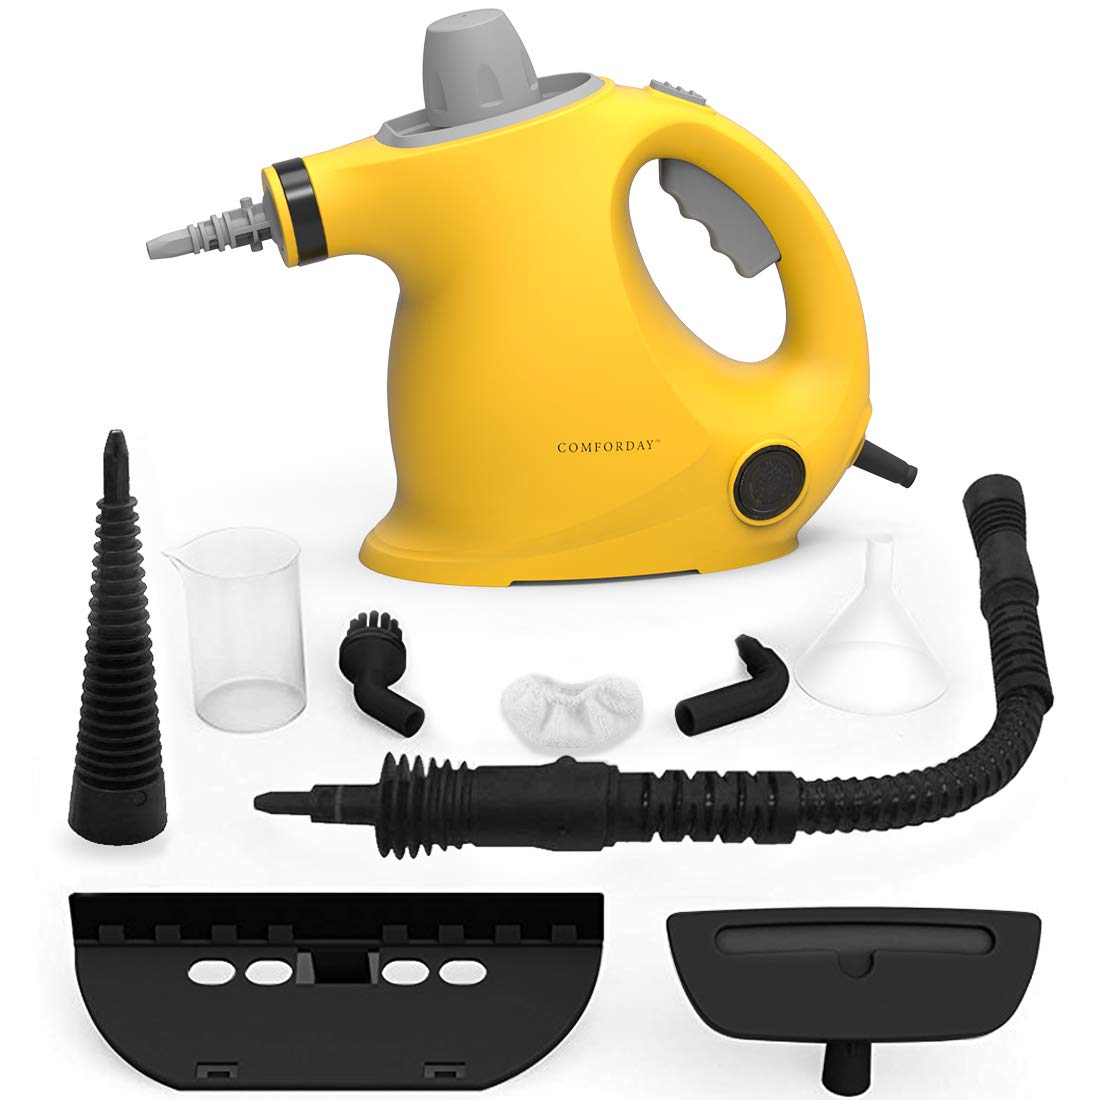 Comforday Steam Cleaner- Multi Purpose Cleaners Carpet High Pressure Chemical Free Steamer with 9-Piece Accessories, Perfect for Stain Removal, Curtains, Car Seats,Floor,Window Cleaning.